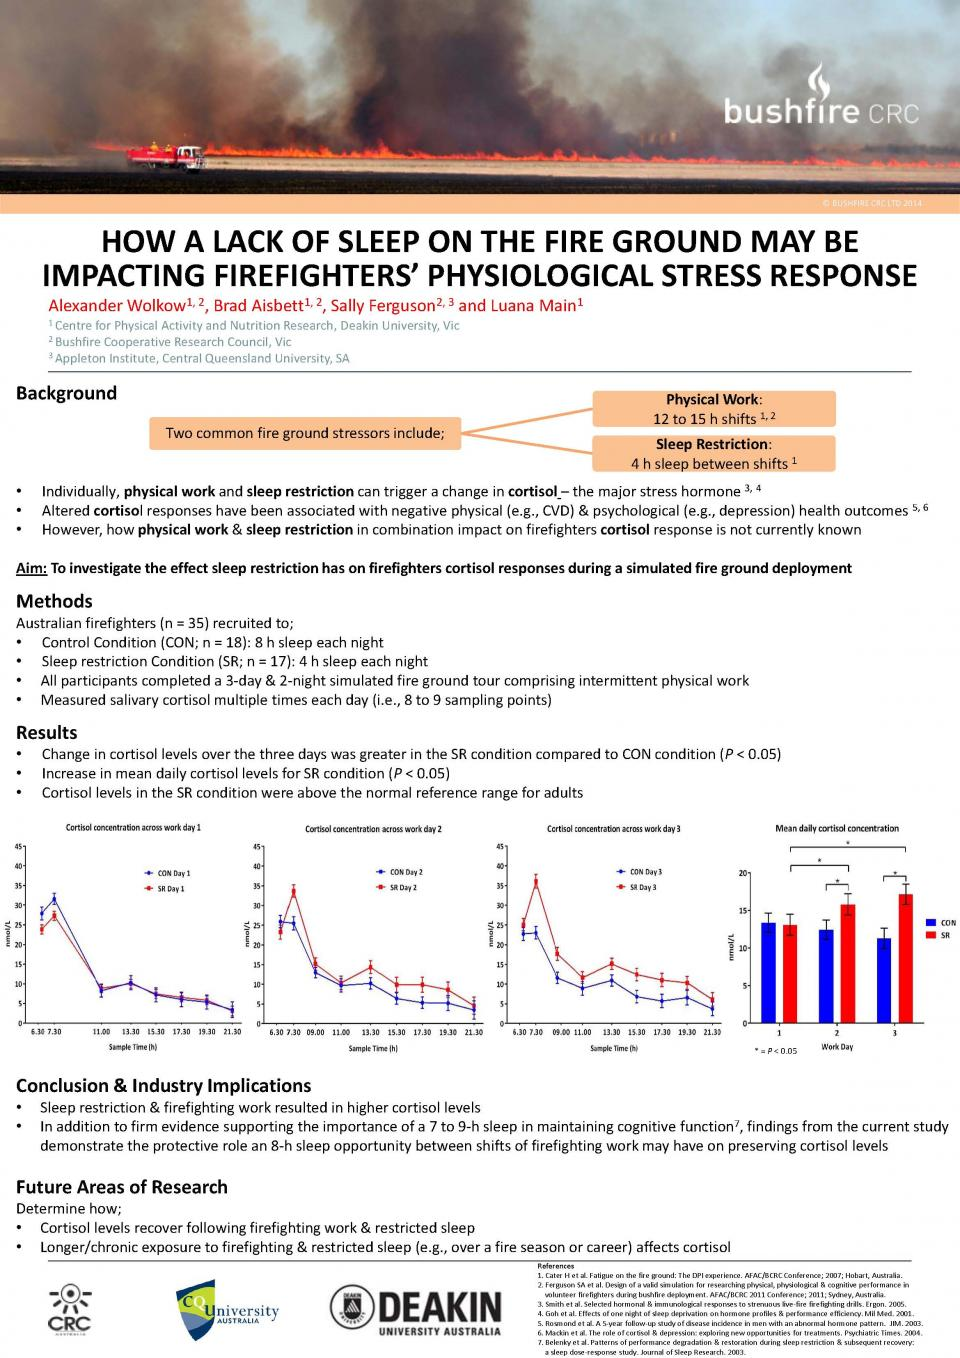 How a lack of sleep on the fire ground may be impacting firefighters' physiological stress response